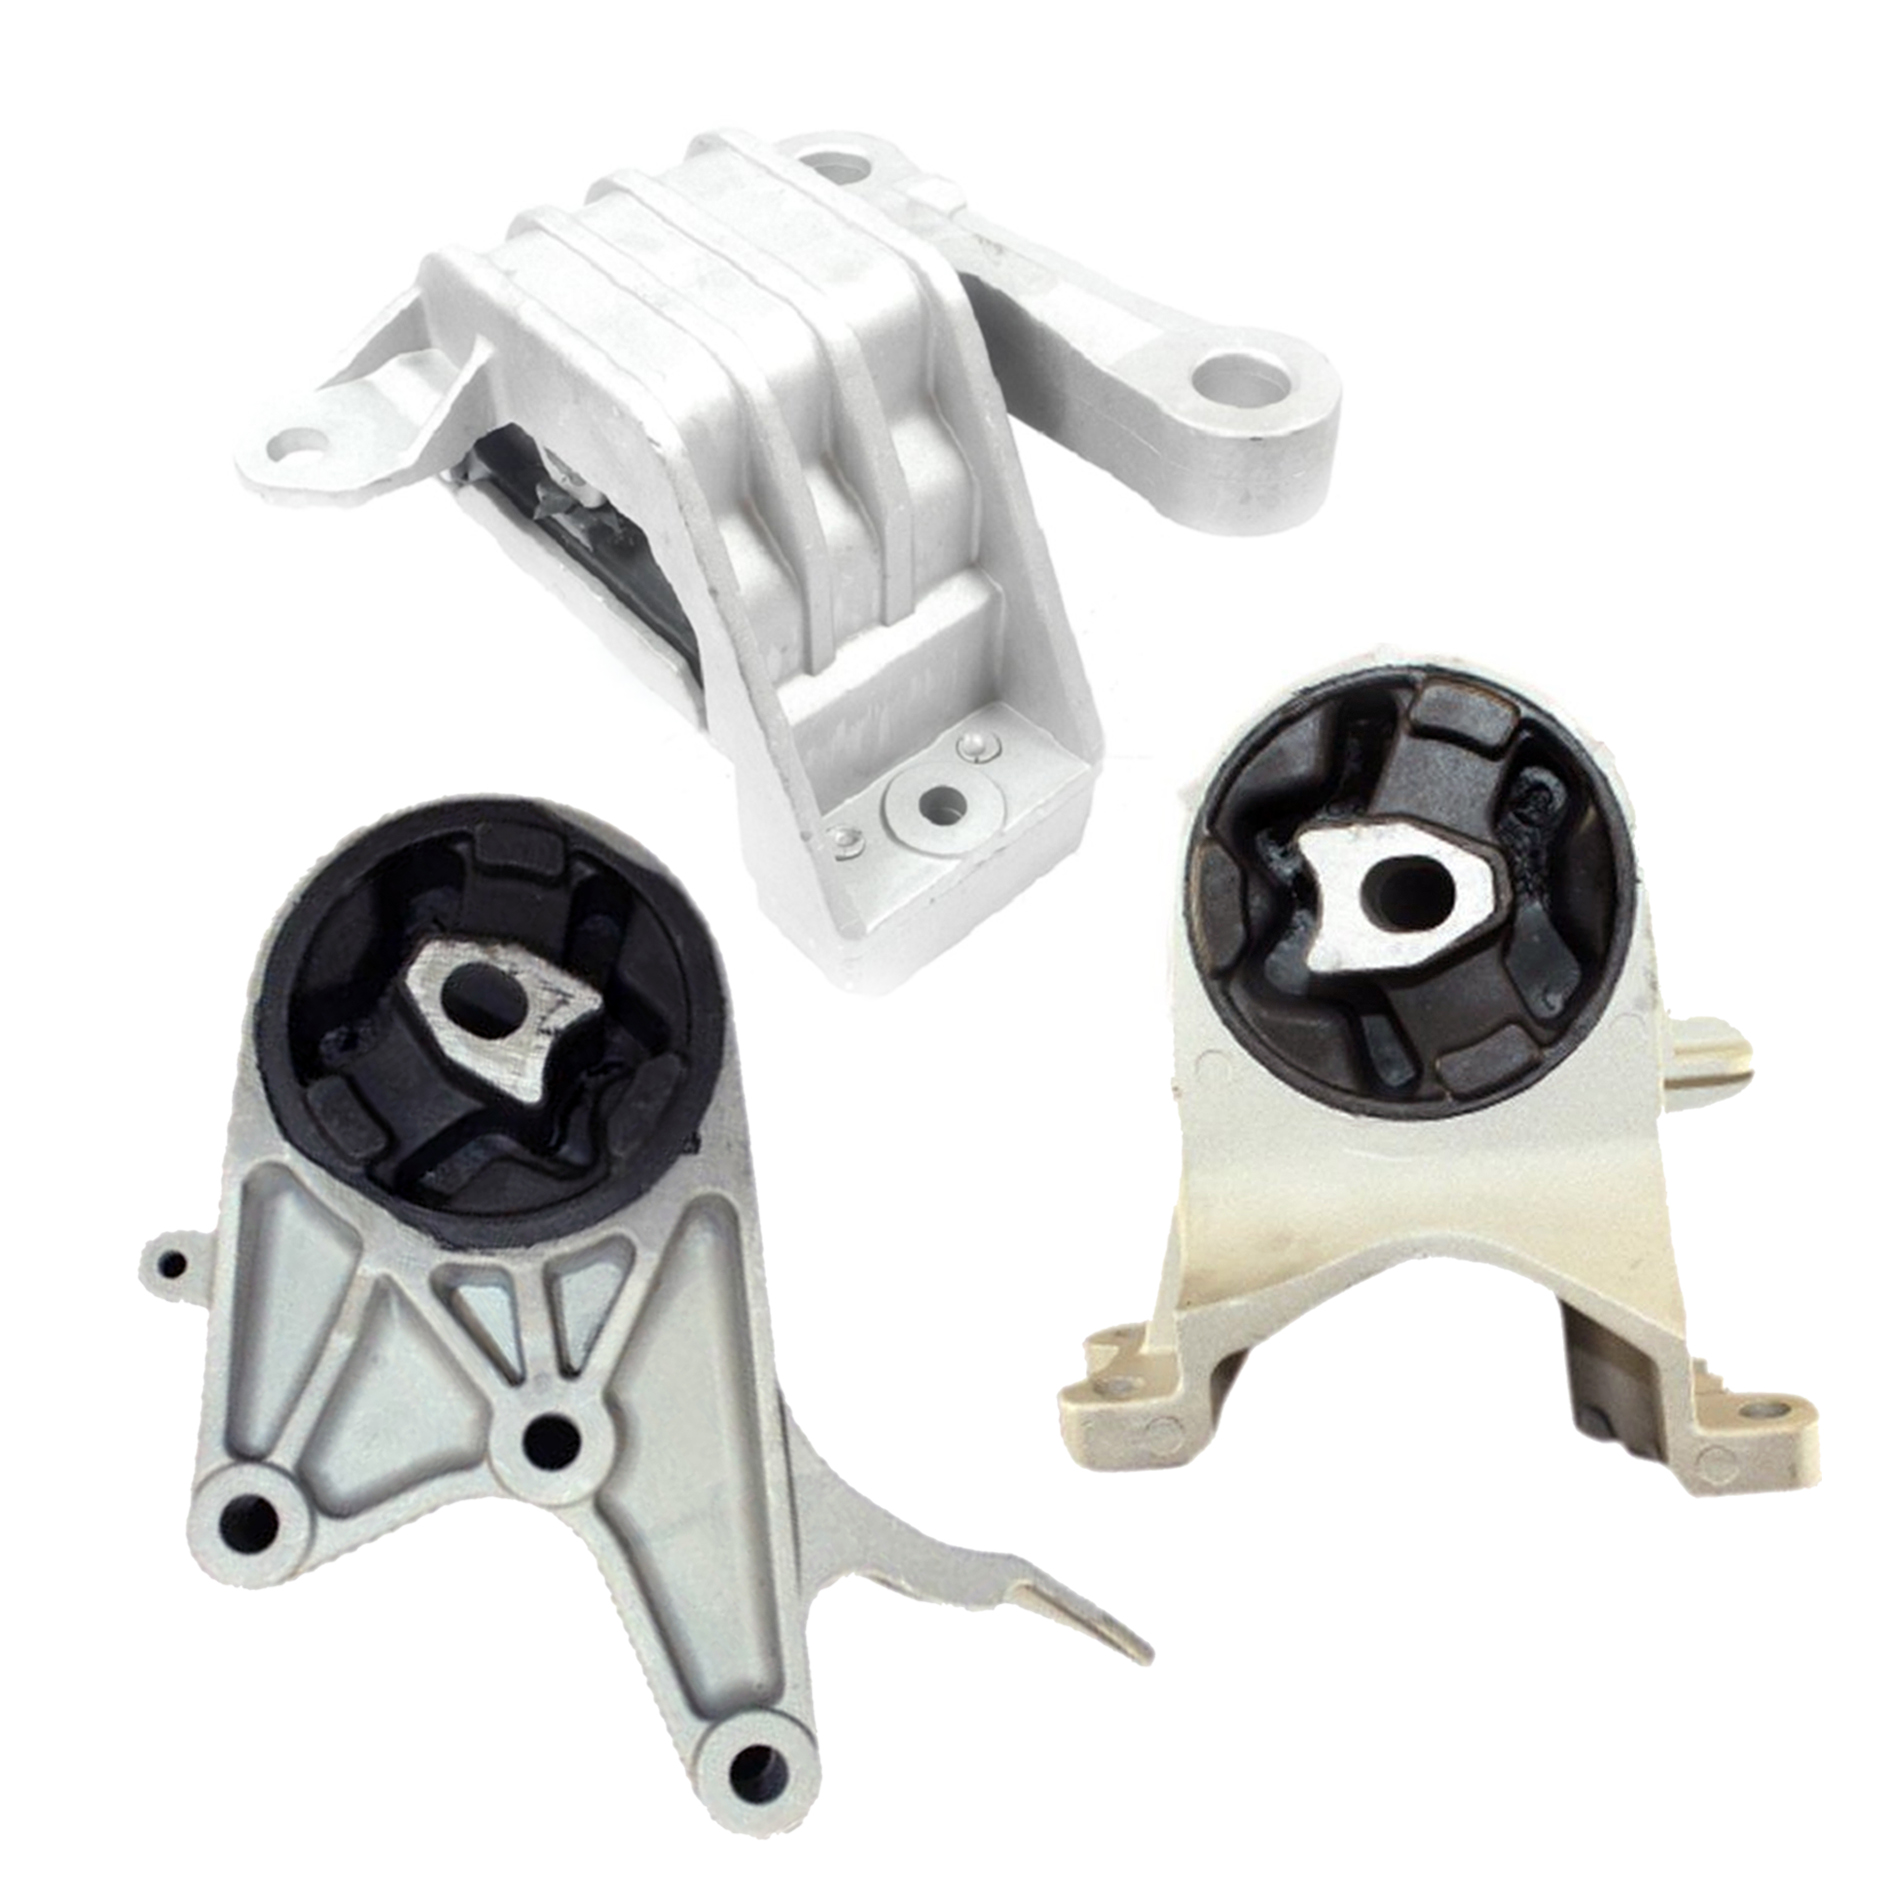 Complete Transmission Mounts Set 3PCS for 2009-2012 Chevrolet Malibu 2.4L 6spd